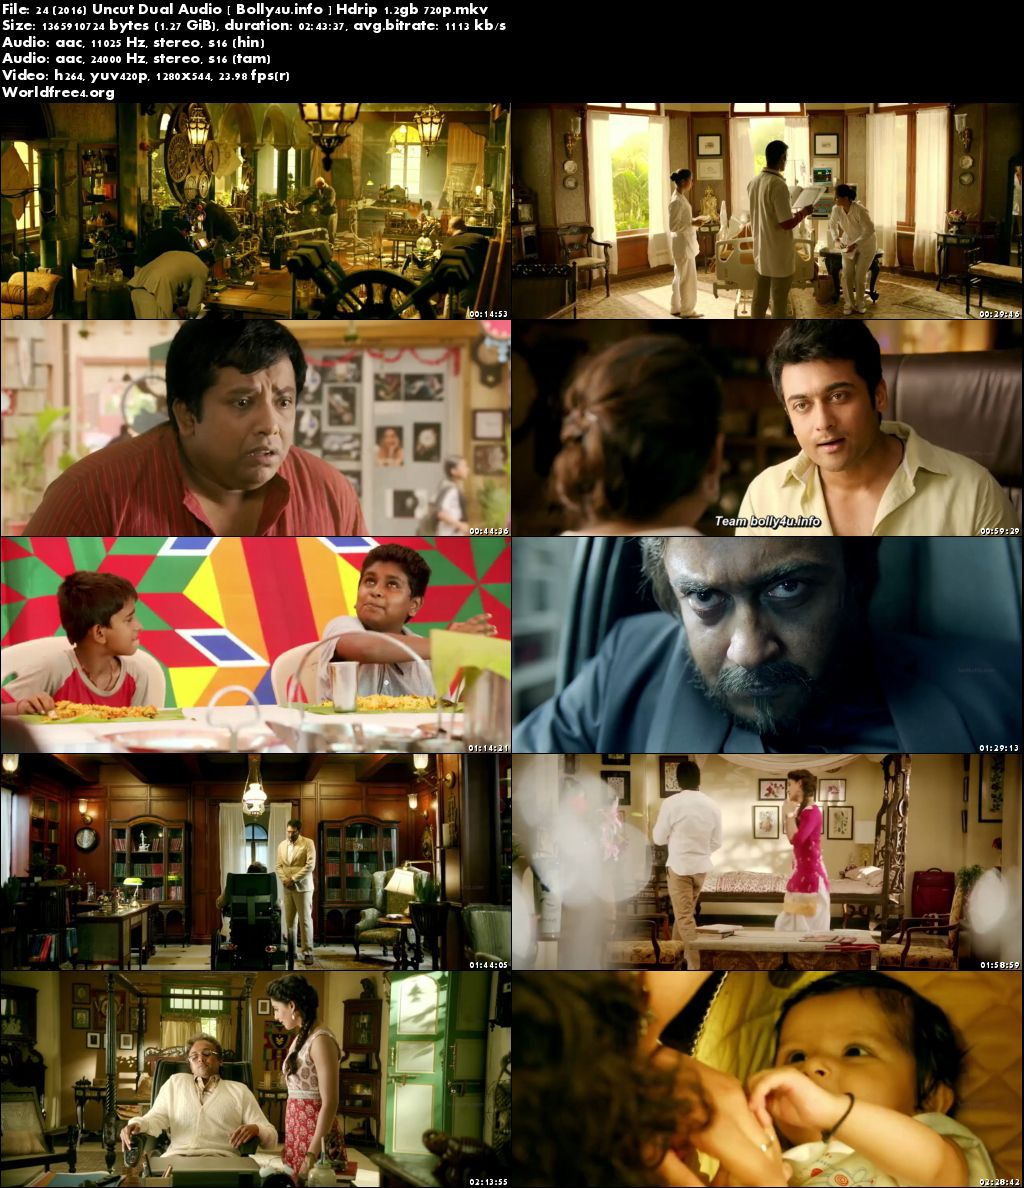 Screen Shoots of Watch Online 24 (2016) HDRip 1.2Gb UNCUT Hindi Dual Audio 720p Free Download Bolly4u.info